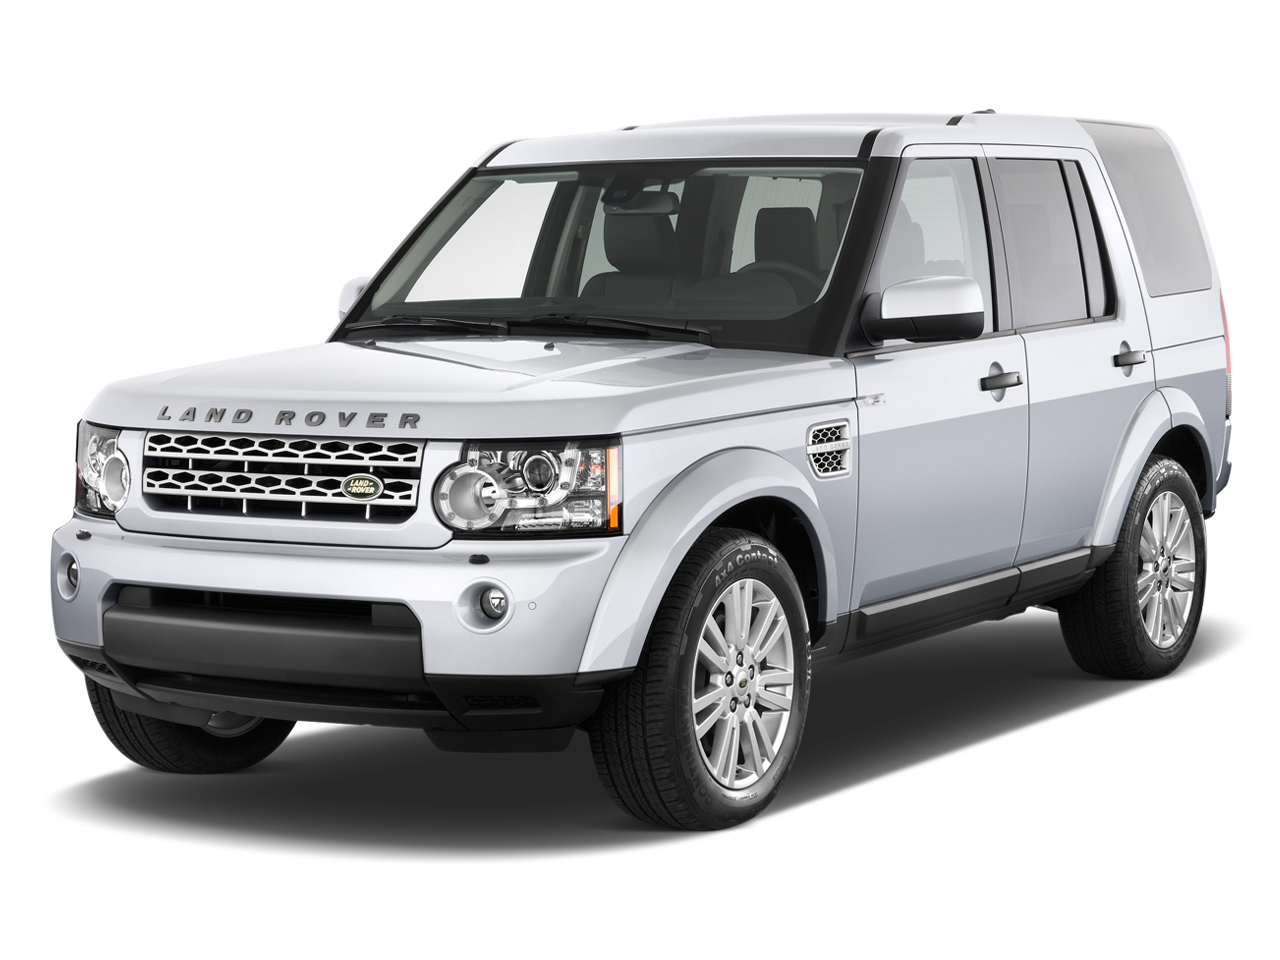 2010 land rover lr4 review ratings specs prices and. Black Bedroom Furniture Sets. Home Design Ideas